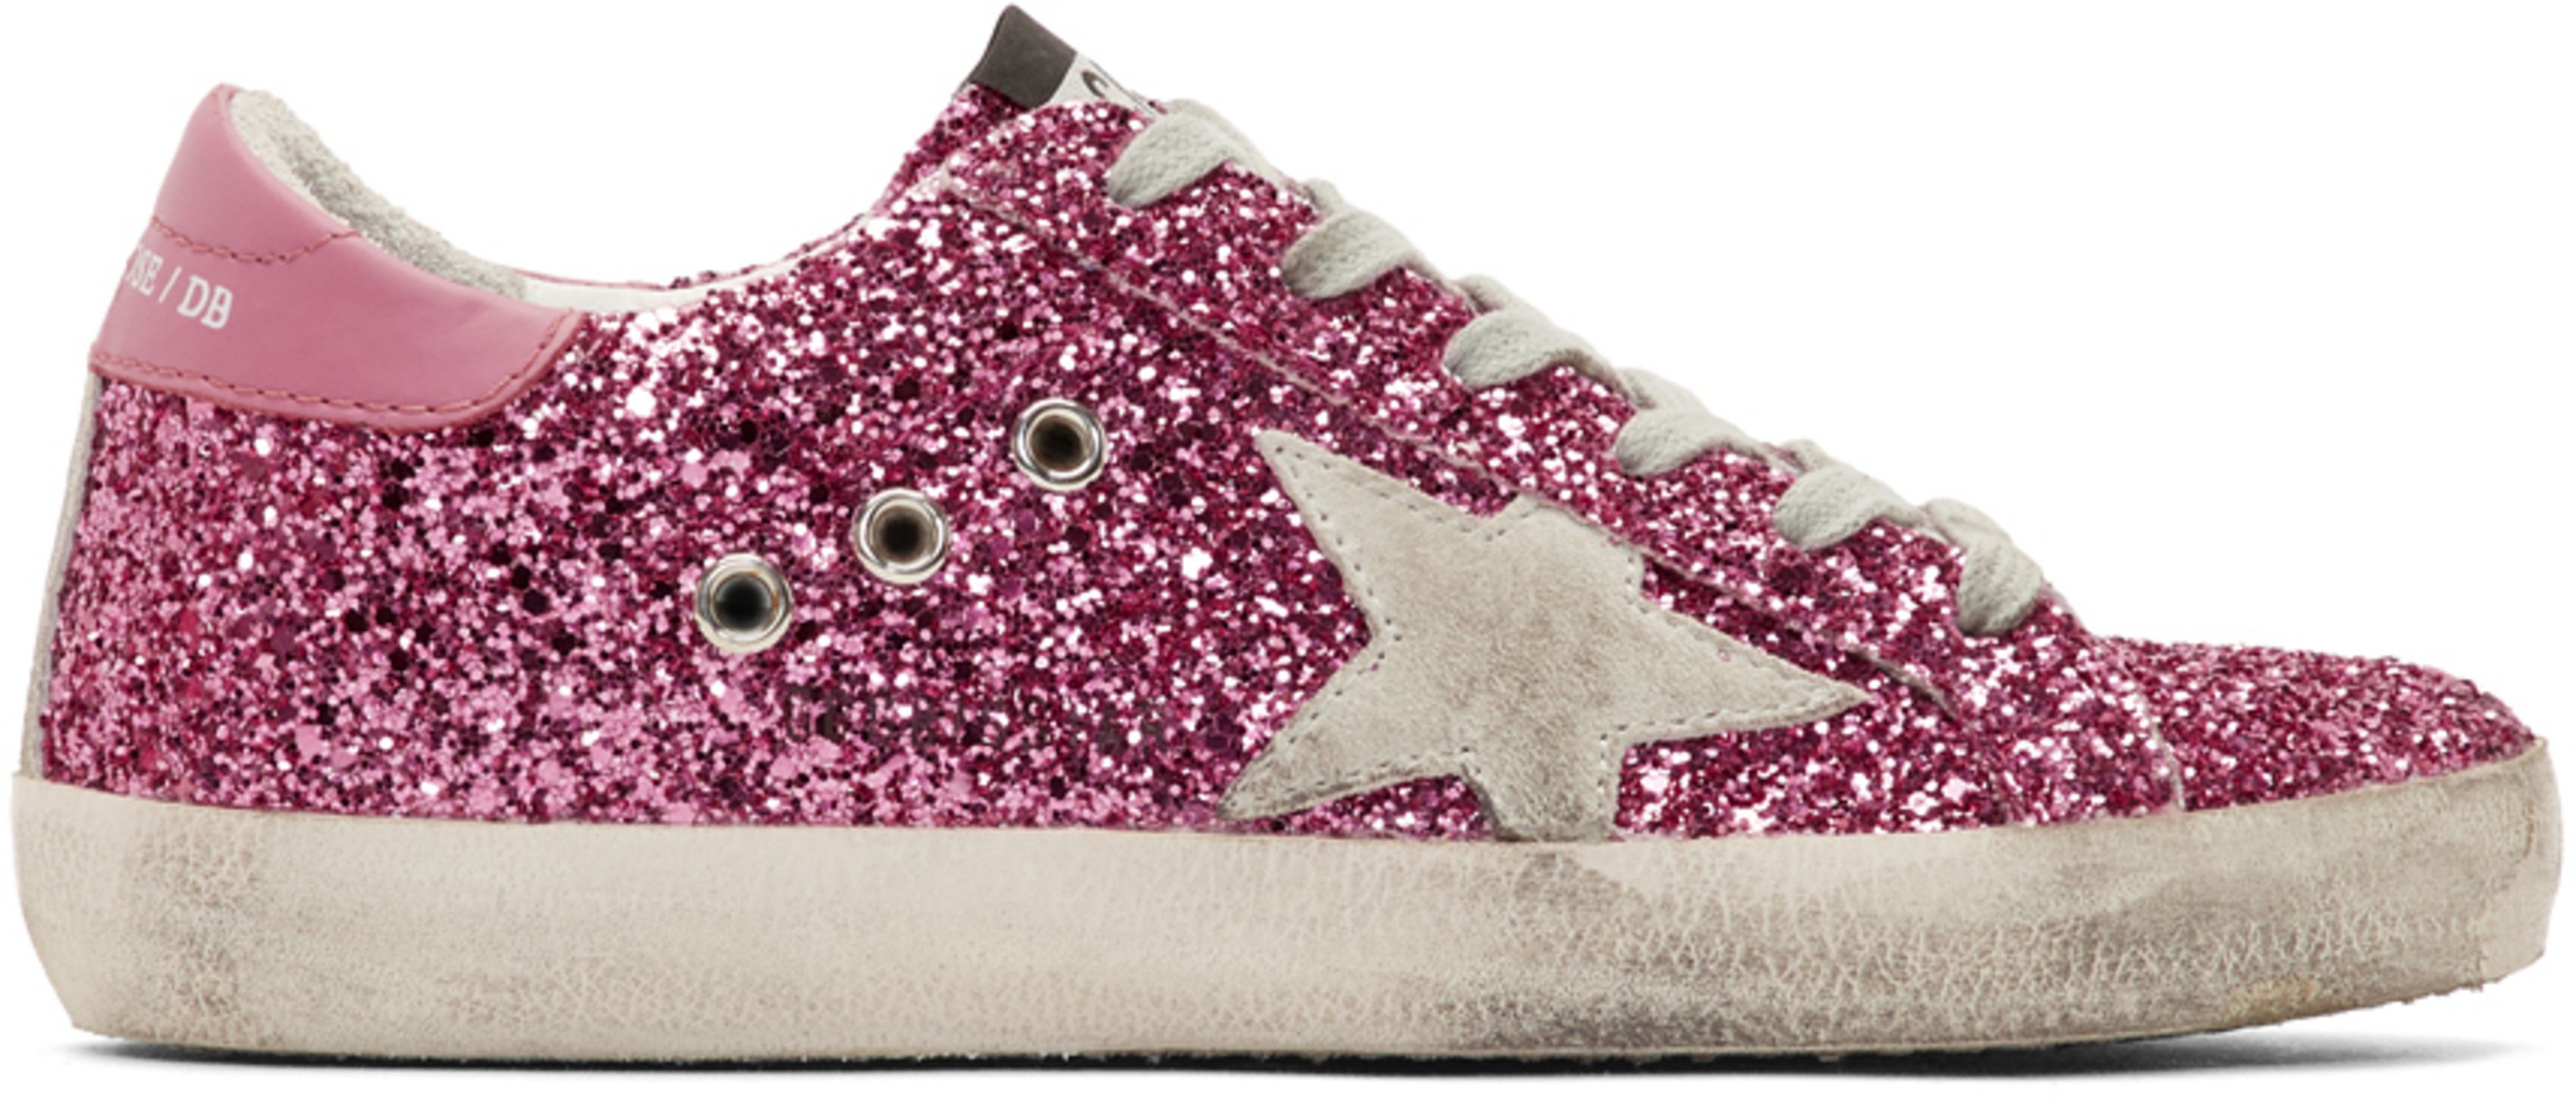 51a5bf716c751 Golden Goose - Pink Glitter Superstar Sneakers | bday in 2019 ...